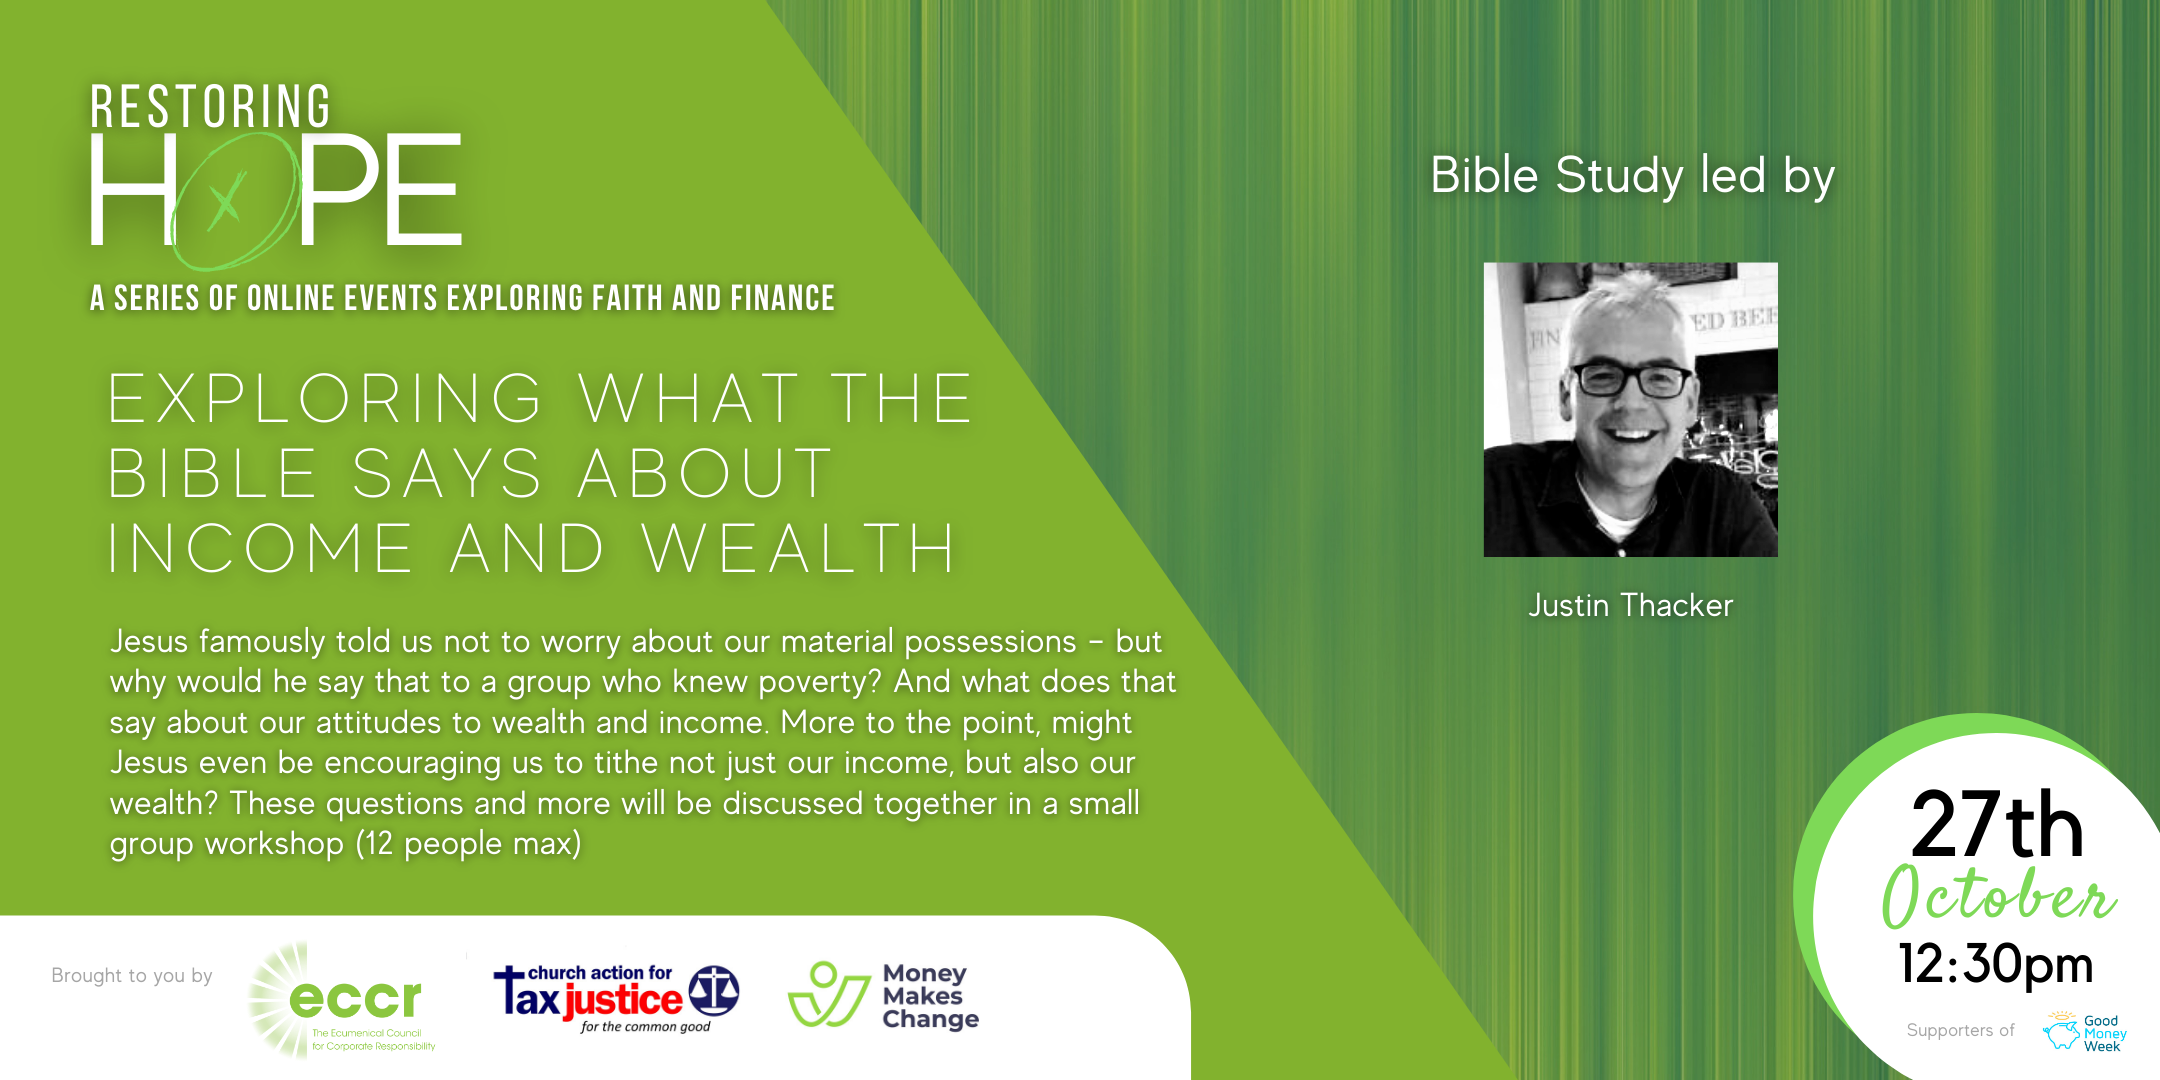 Restoring Hope | What does the Bible say about income and wealth? (Tuesday)